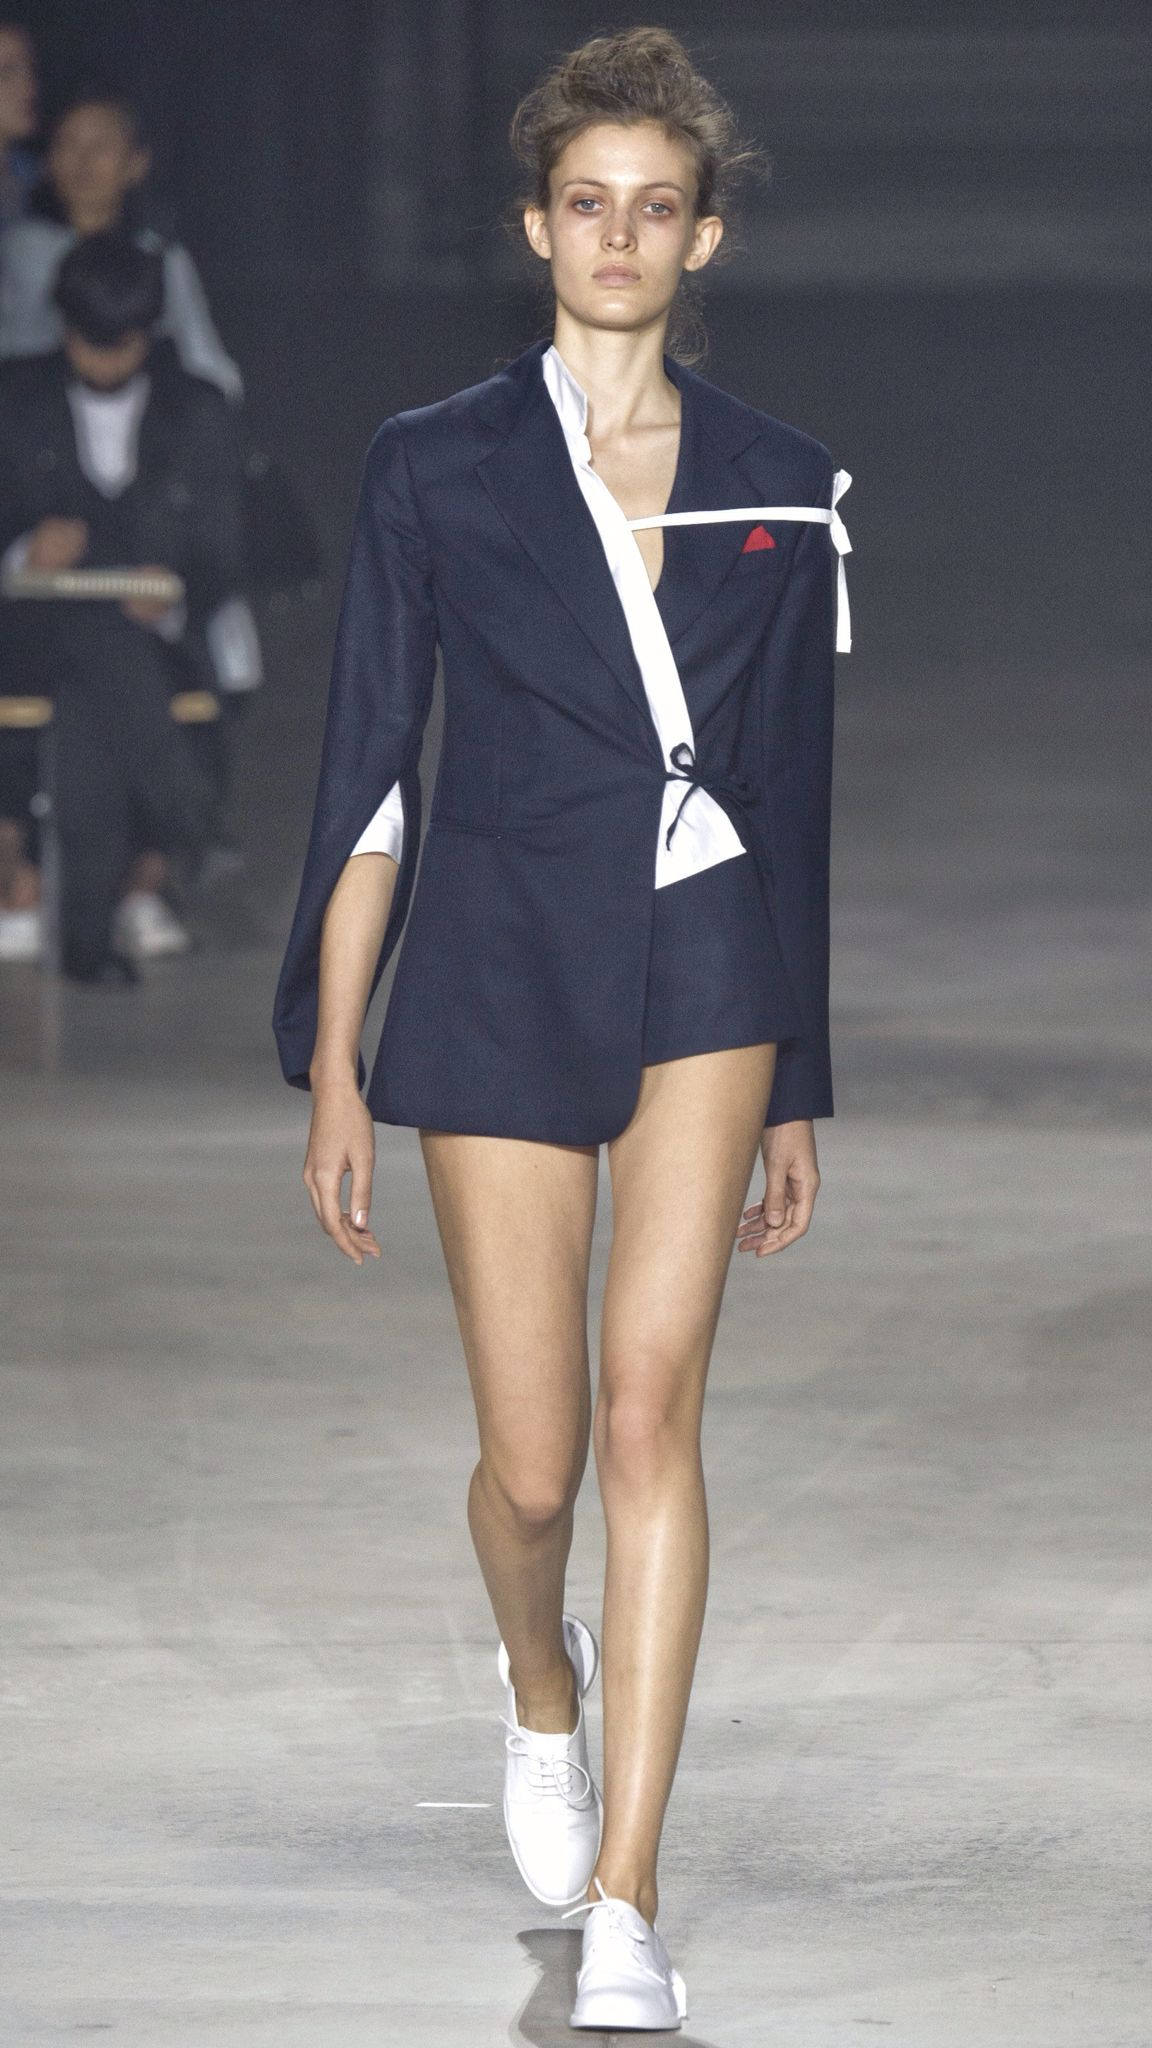 Jacquemus Spring 2016 Ready-to-Wear Fashion Show | RunWay ...